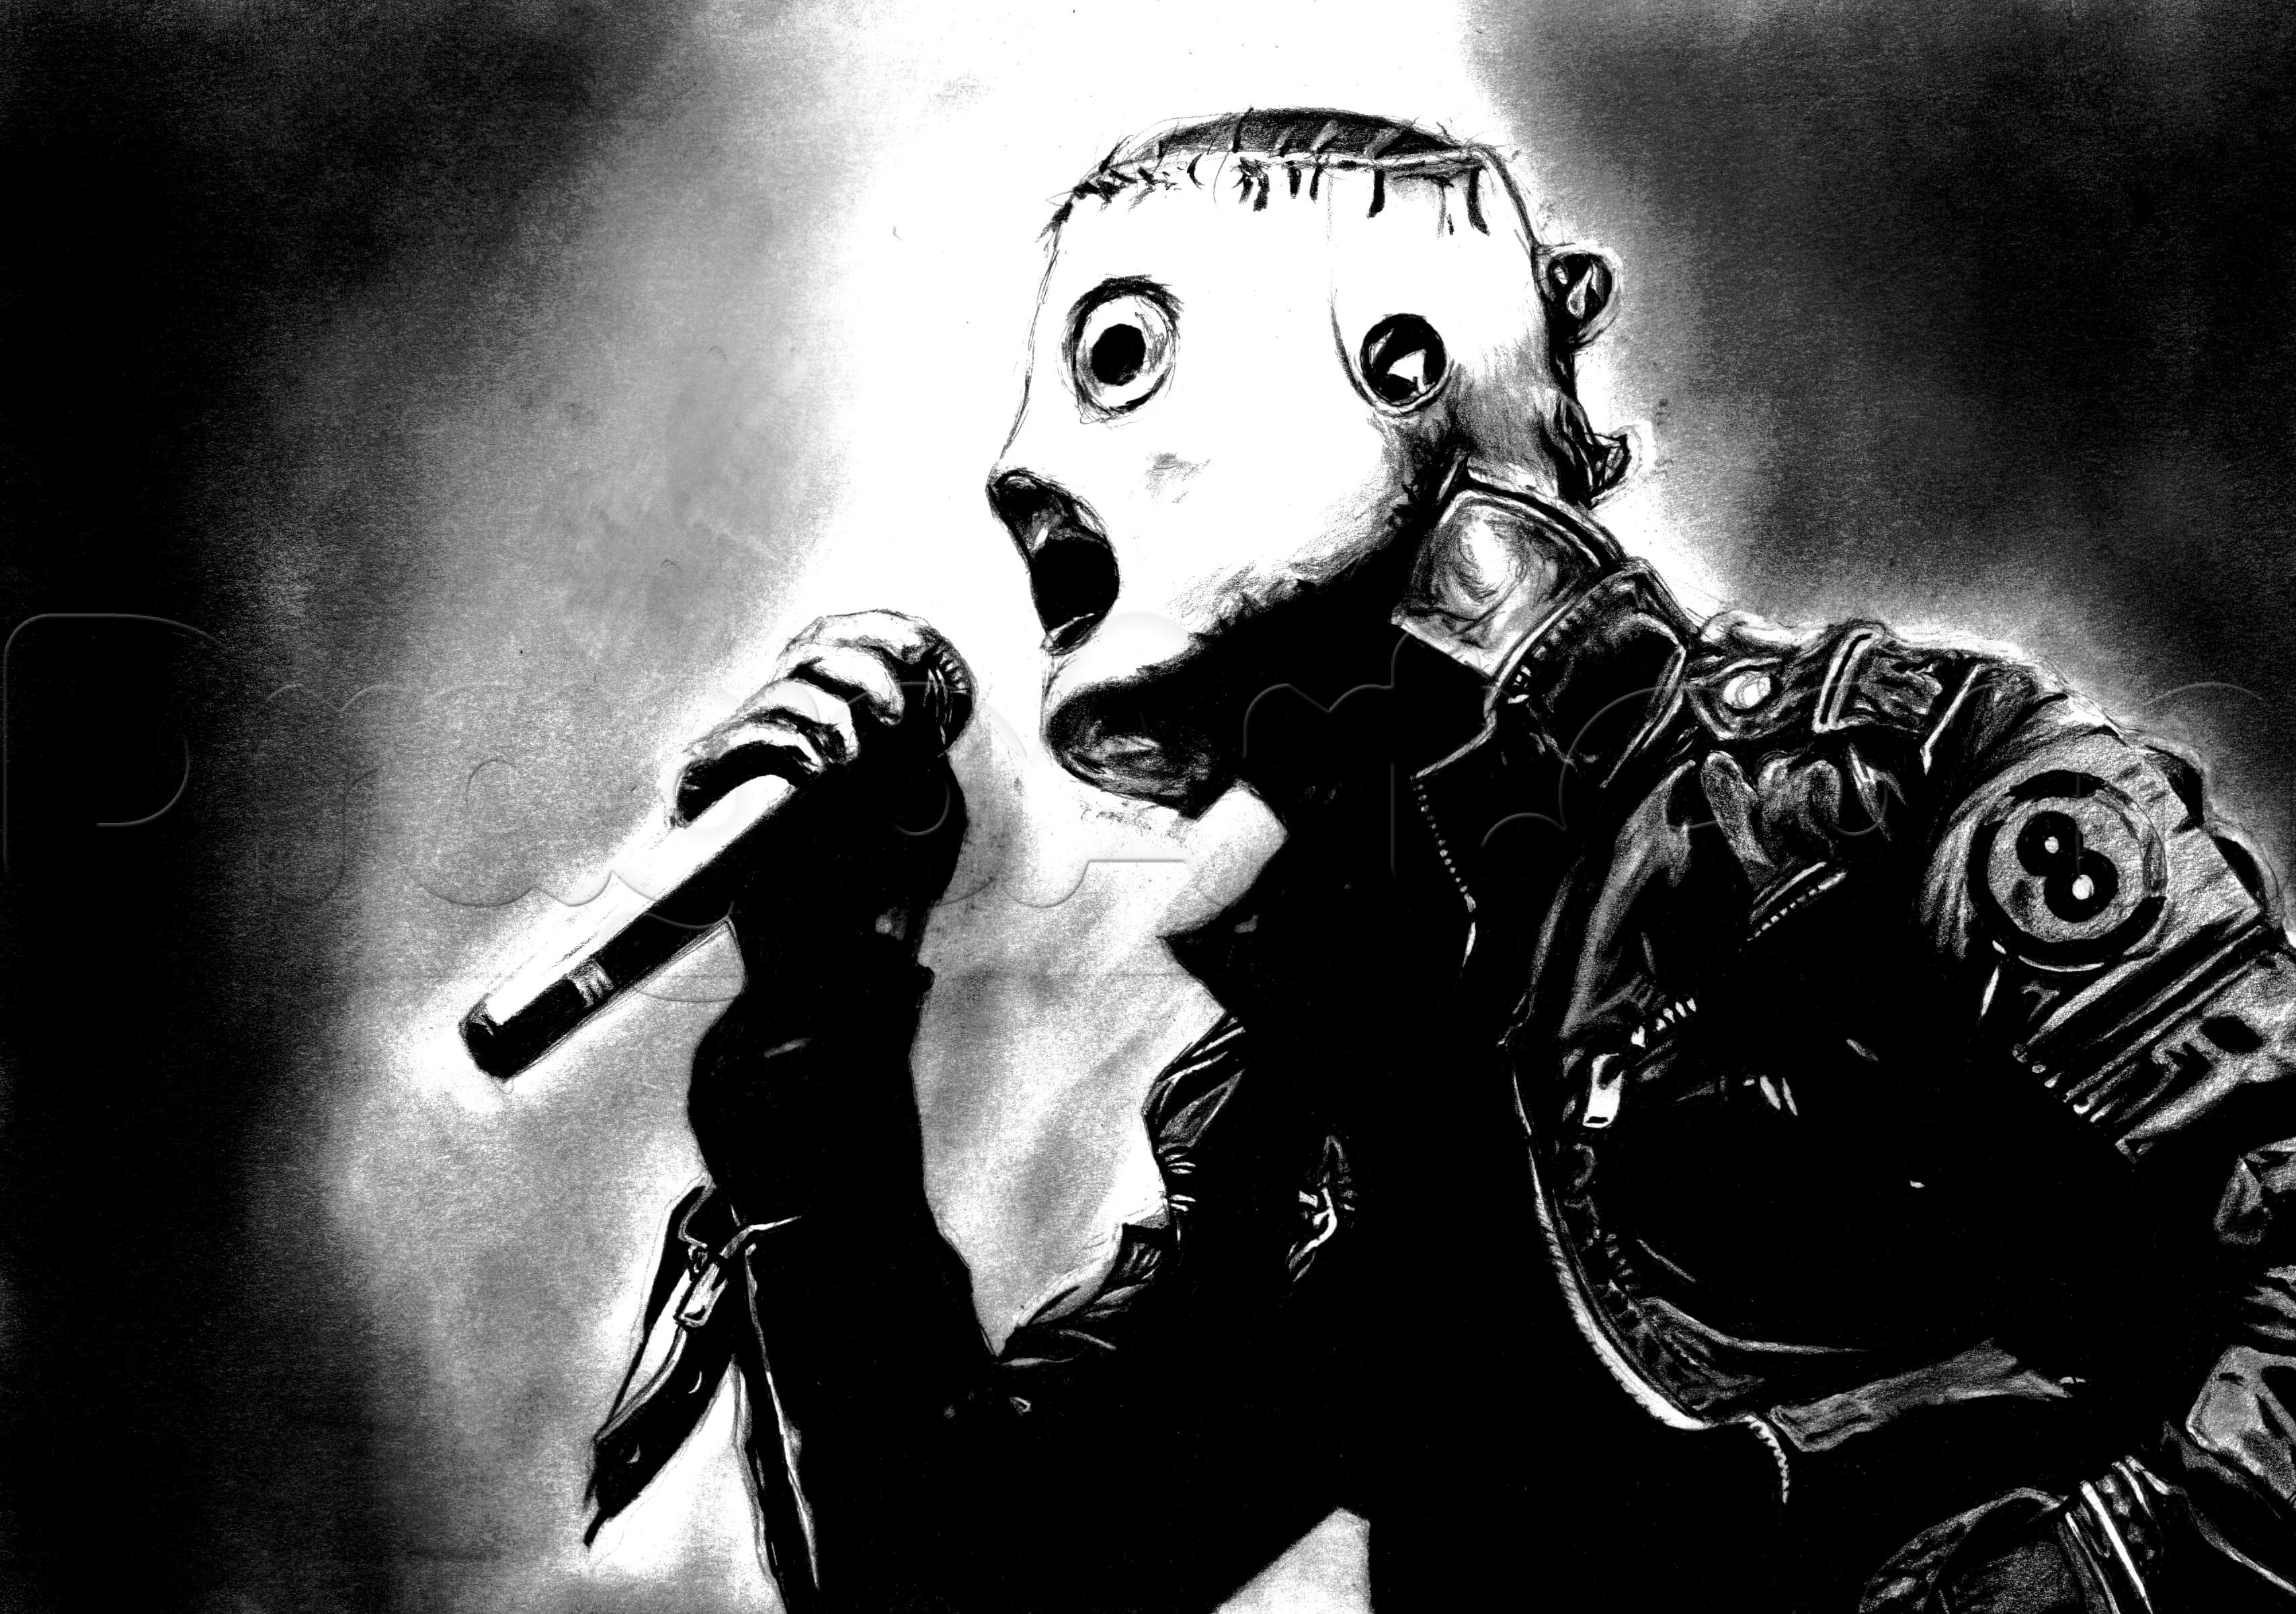 How to Draw Corey Taylor Slipknot Step by Step Stars 3416x2401